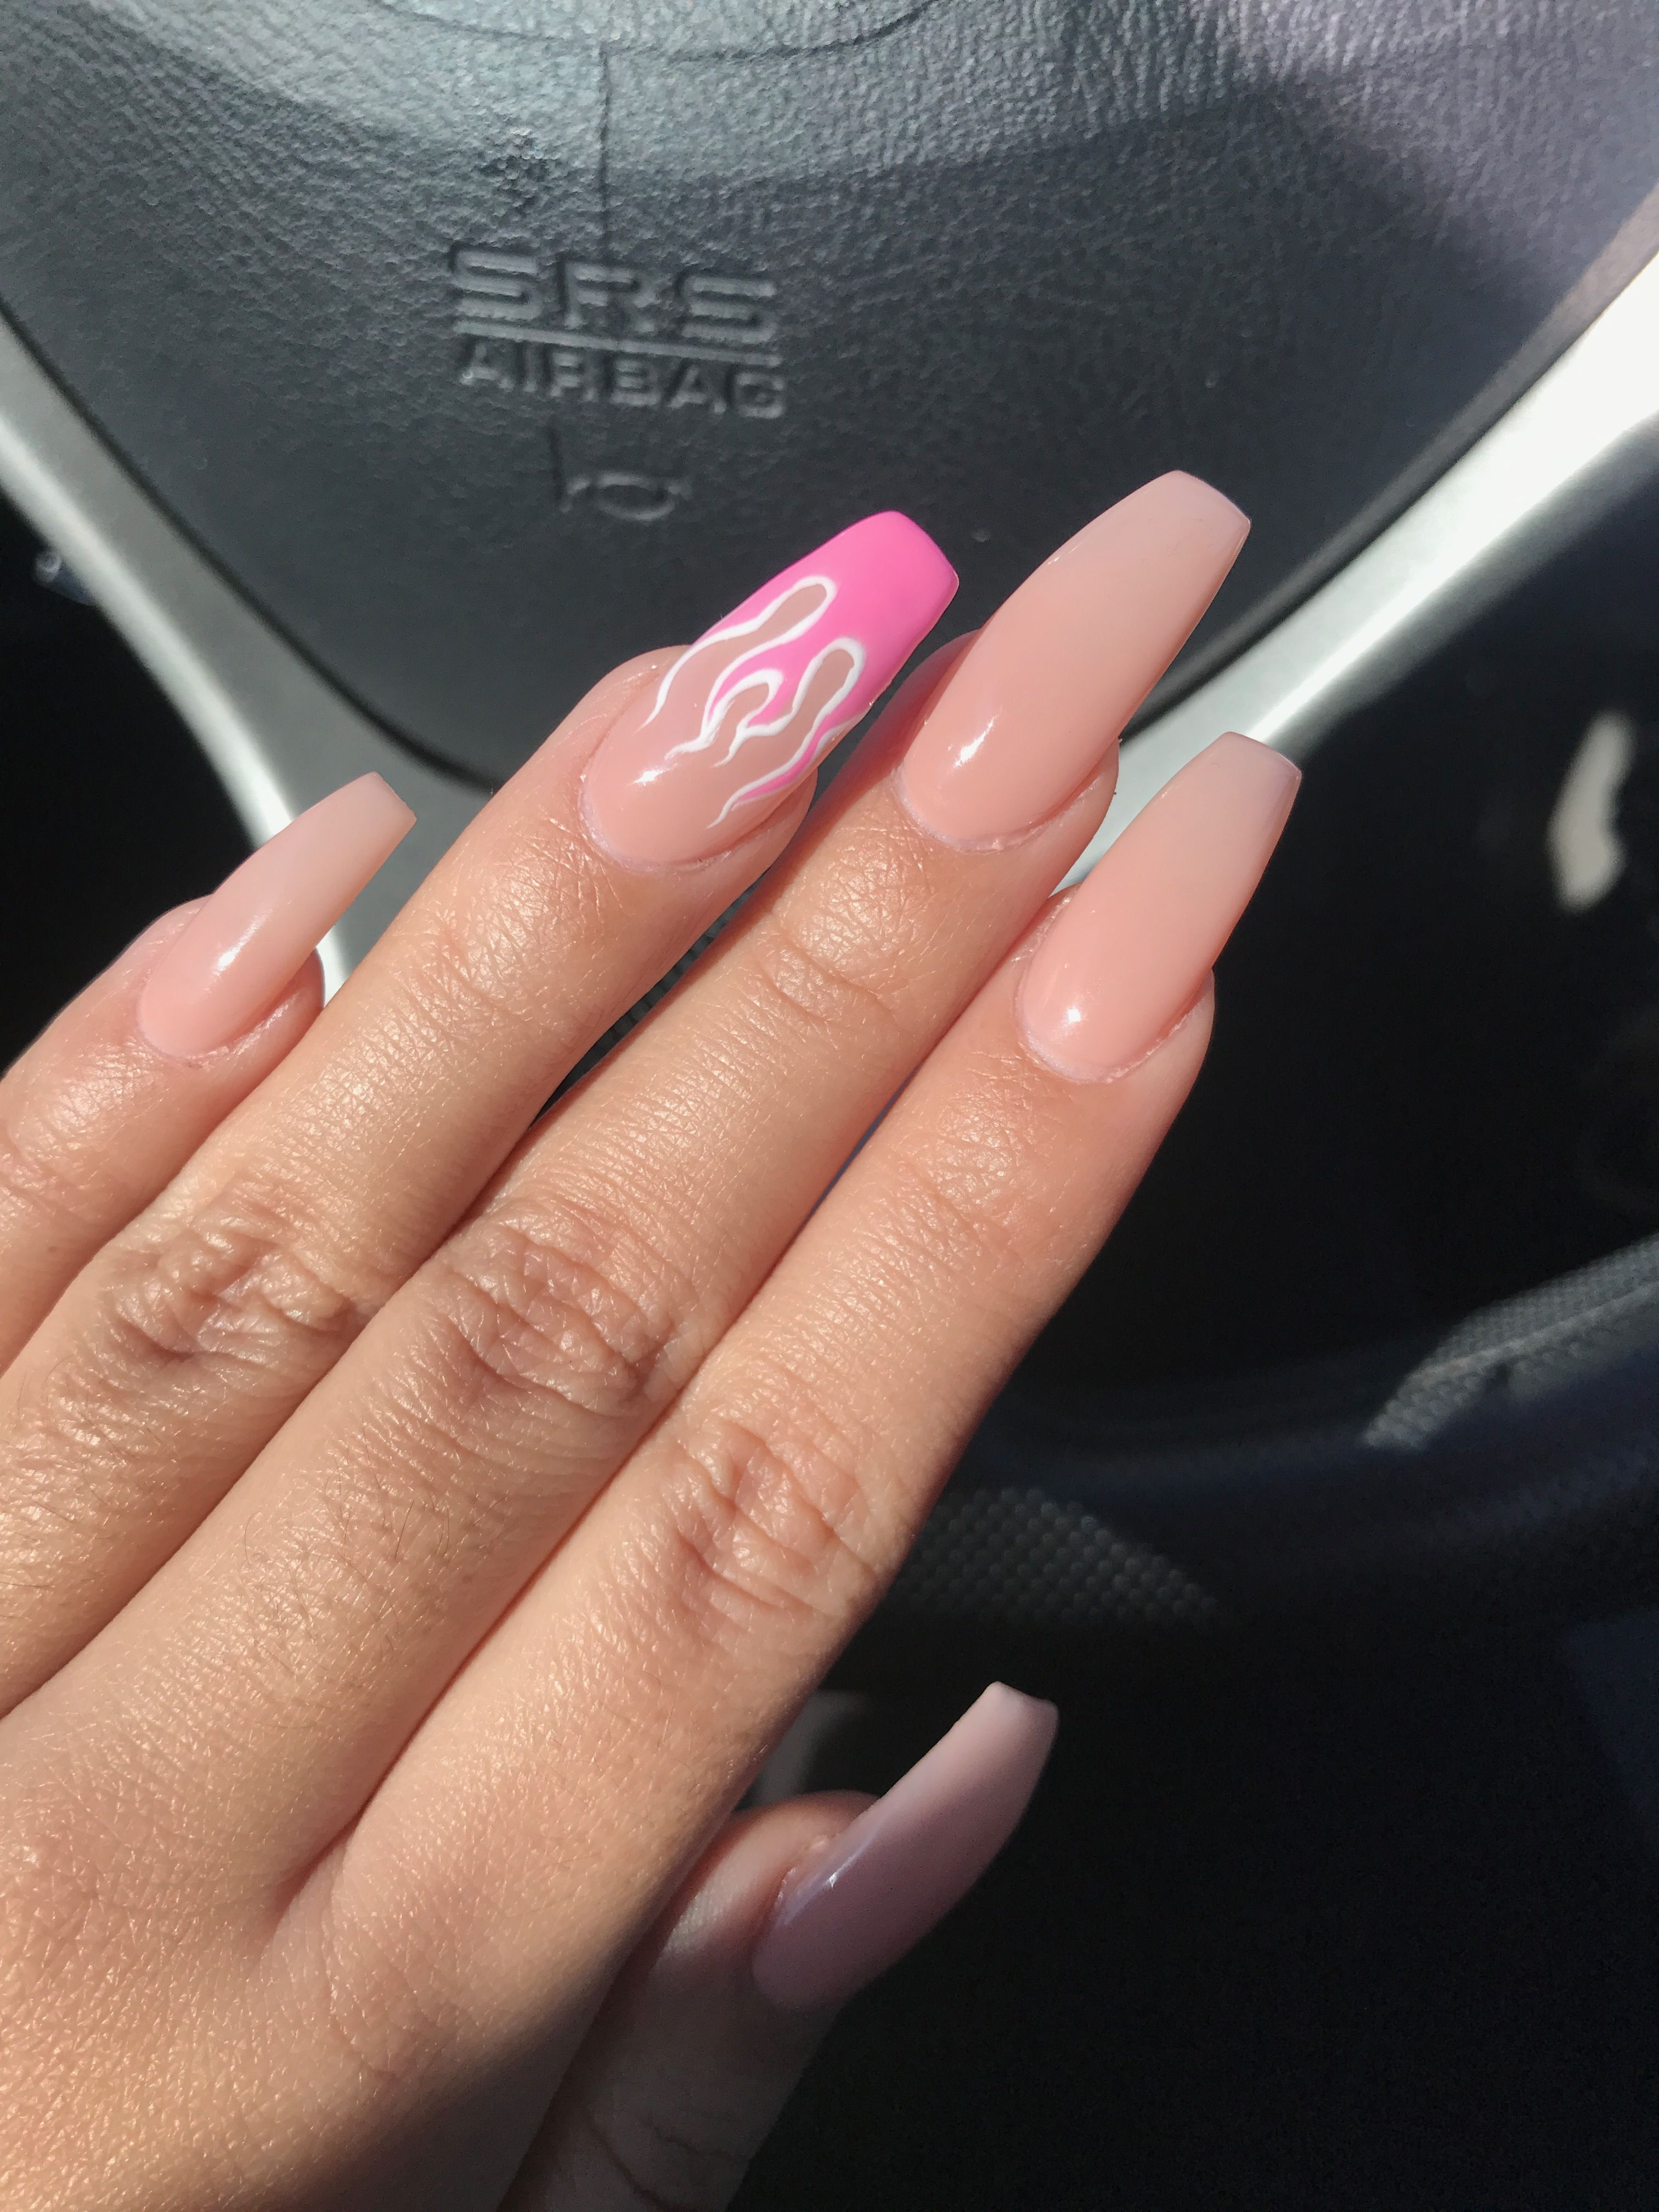 Pink Valentine Flame Coffin Acrylic Nails Aesthetic Acrylic Nails Acrylic Aesthetic Aestheticacrylicnails Coffin Flame Nails Pink Valentine Acrylic Di 2020